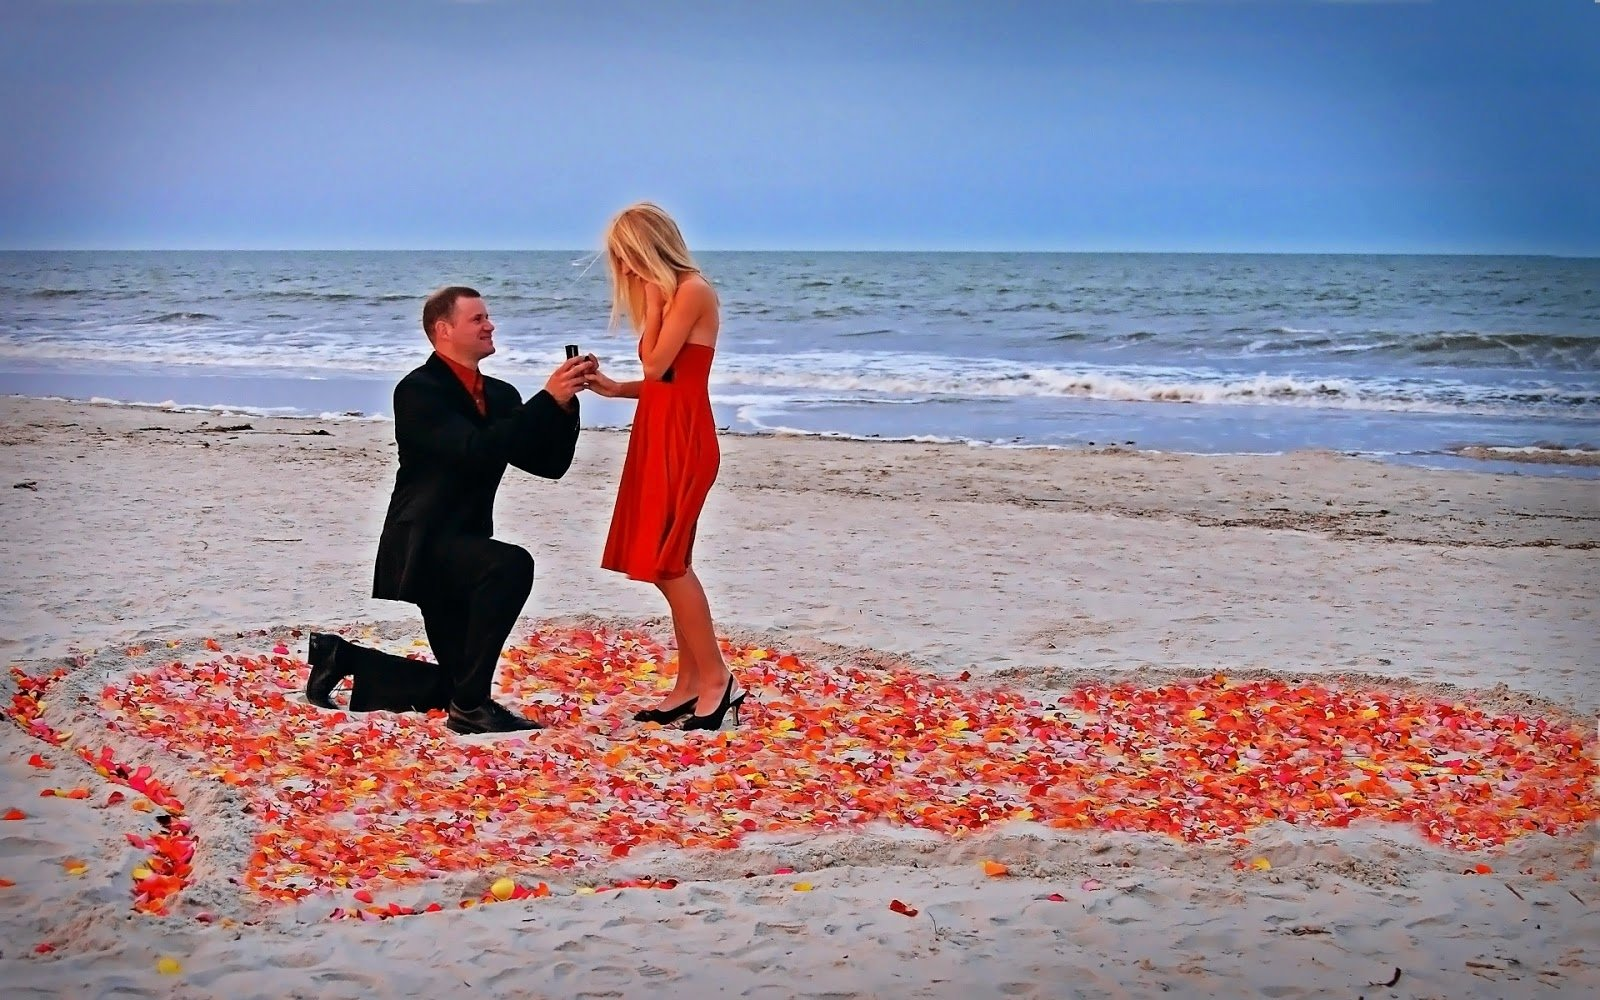 10 Unique Ideas On How To Propose proposal ideas 83 creative romantic ways to propose 2020